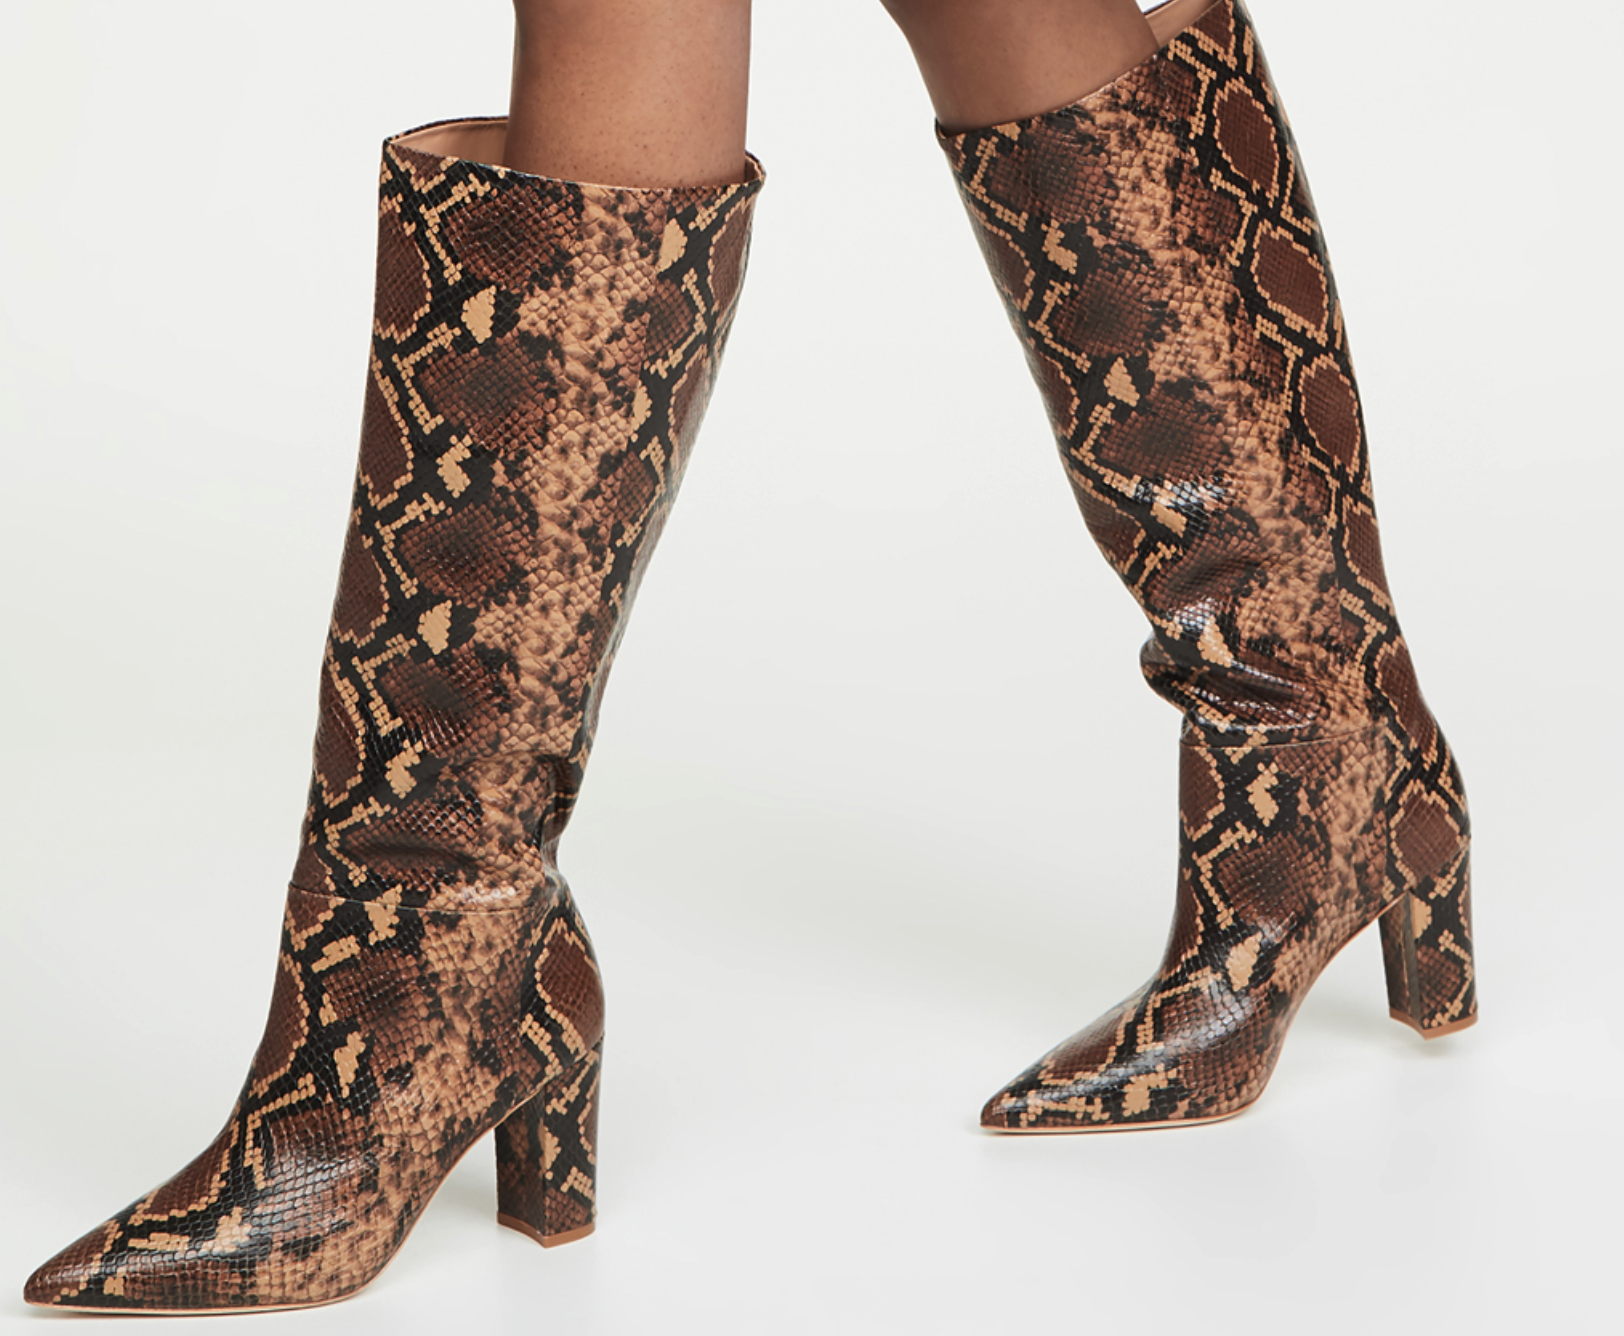 Ulla Johnson steps out in these amazing - Knee-High Python Boots